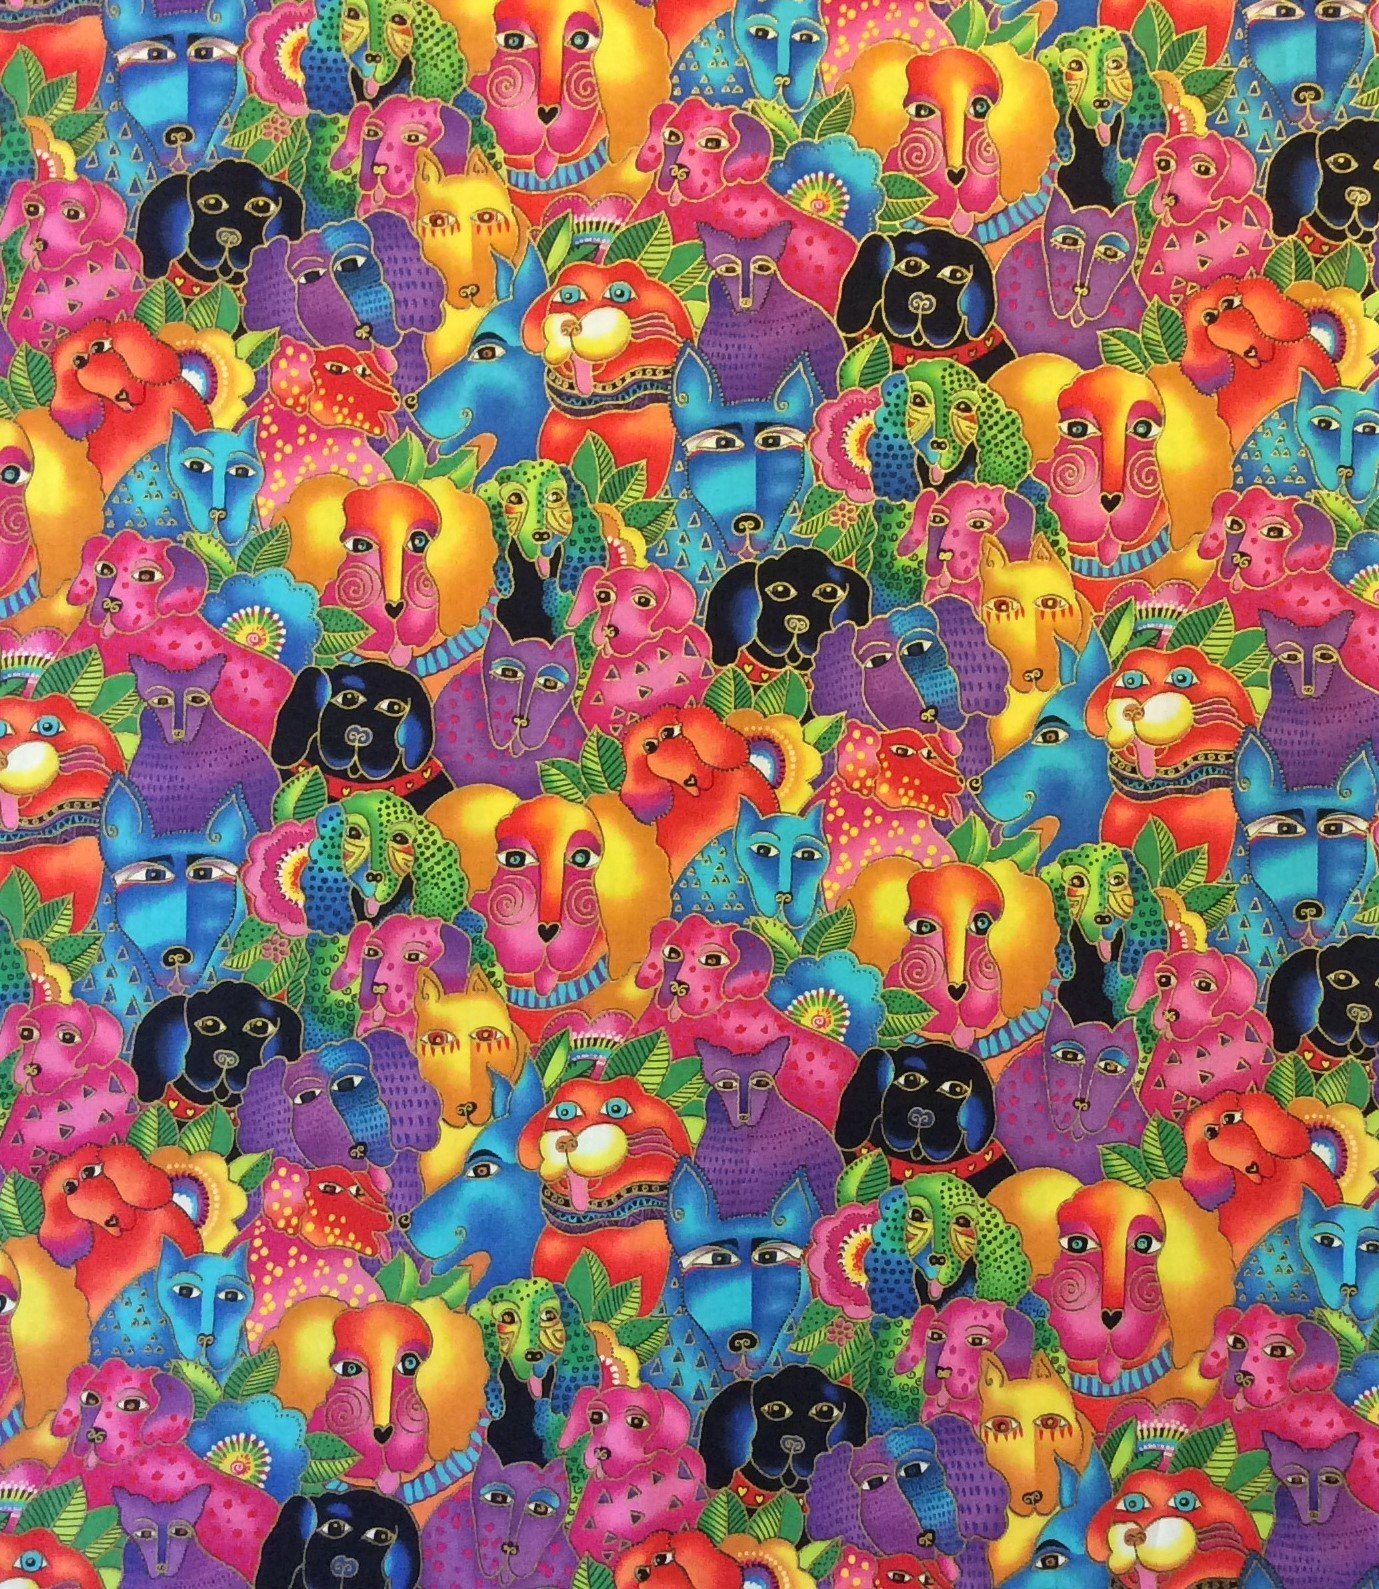 Dog Puppies Colorful Psychedelic Painting Watercolor Quilting Cotton Fabric CL19